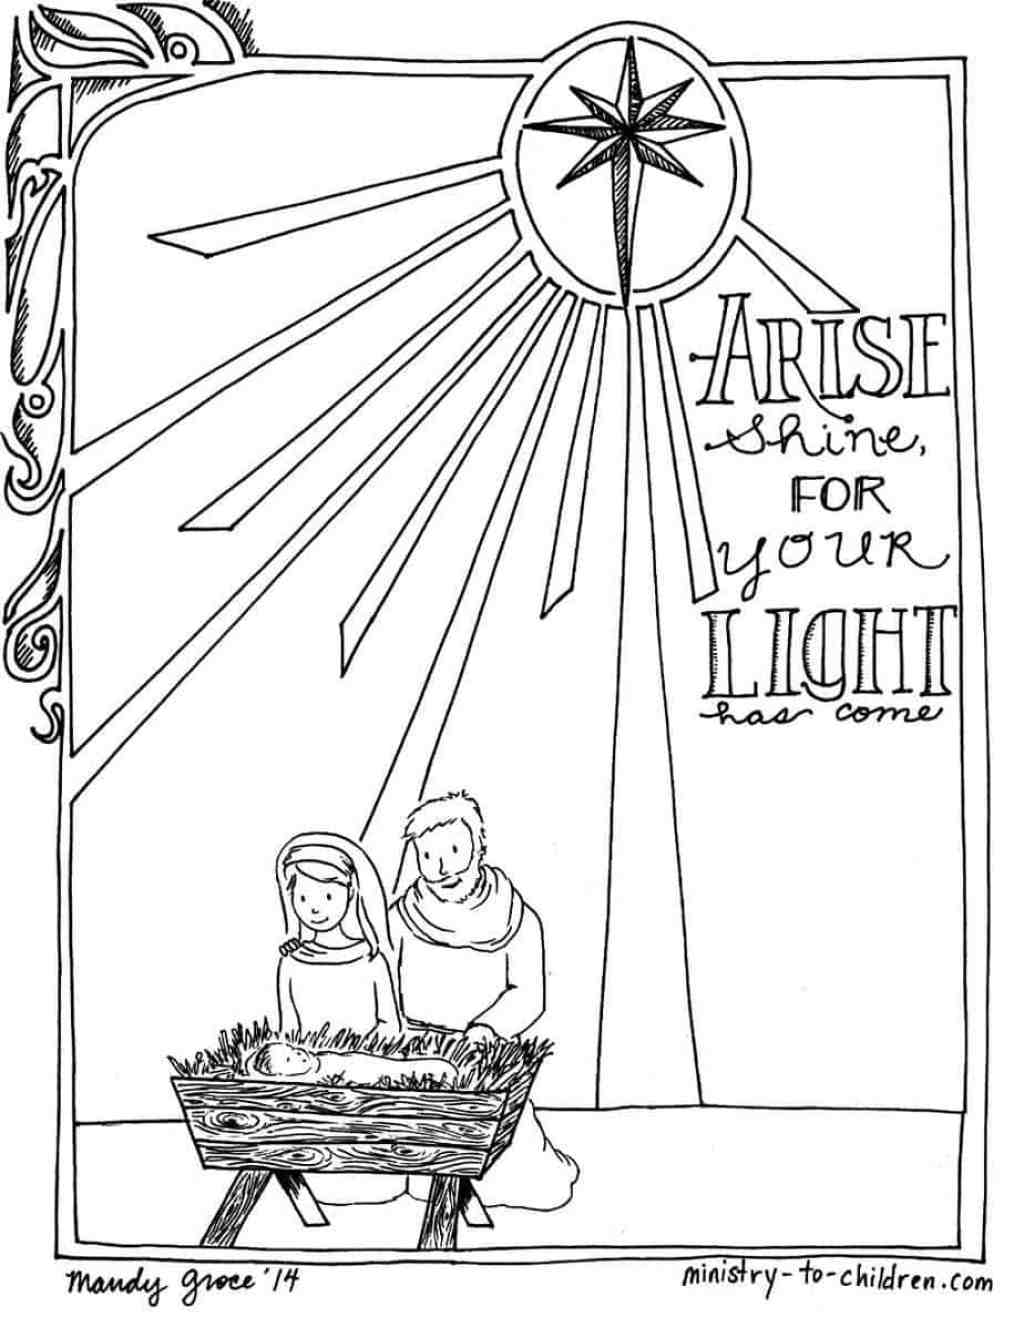 Printable Christmas Nativity Coloring Pages Ministry To Children Com